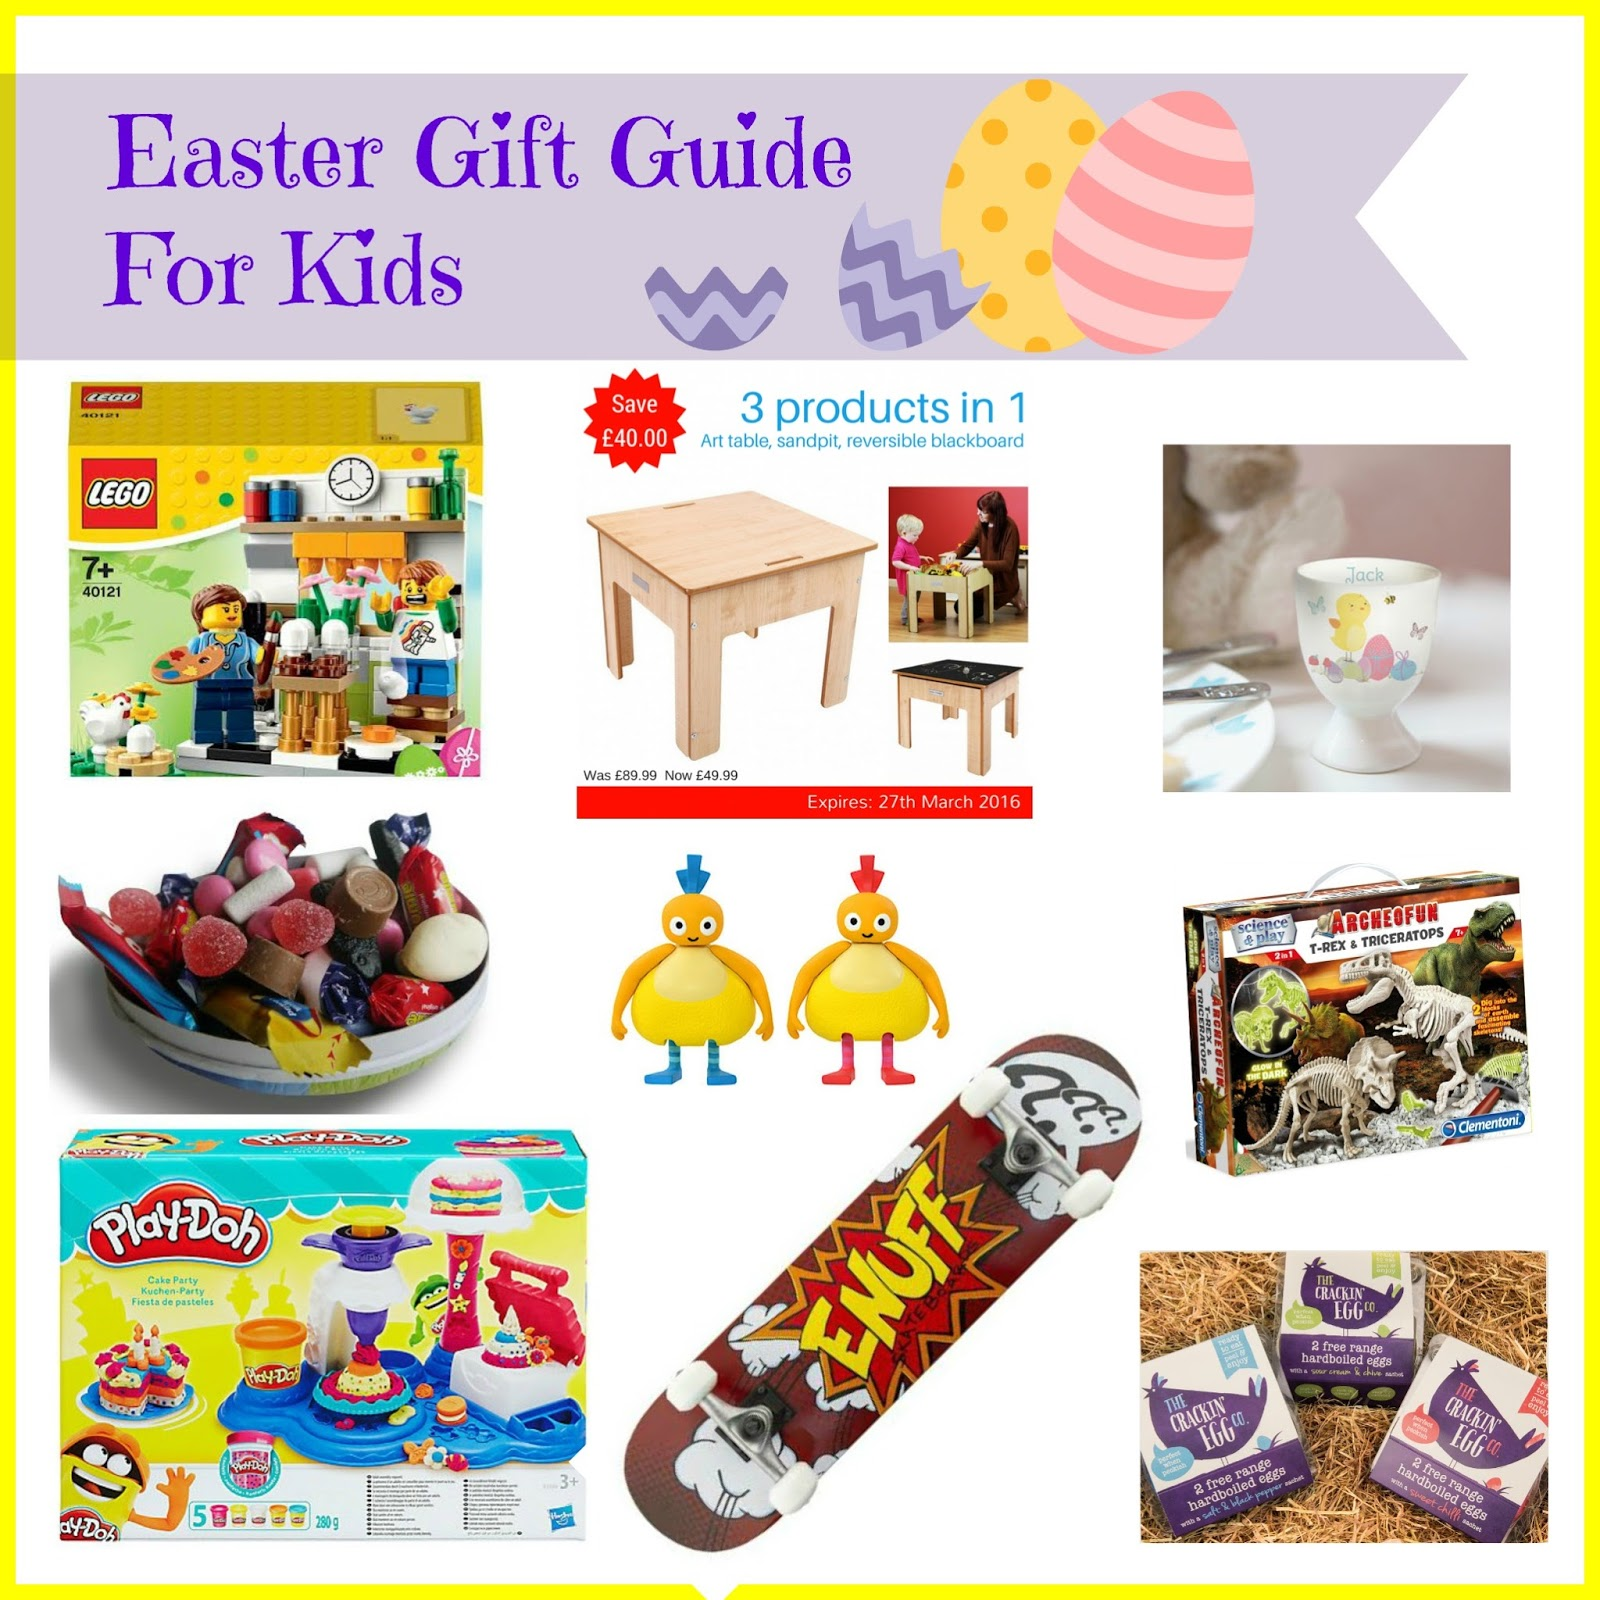 Entertaining elliot march 2016 easter gift guide for kids skateboard giveaway negle Image collections